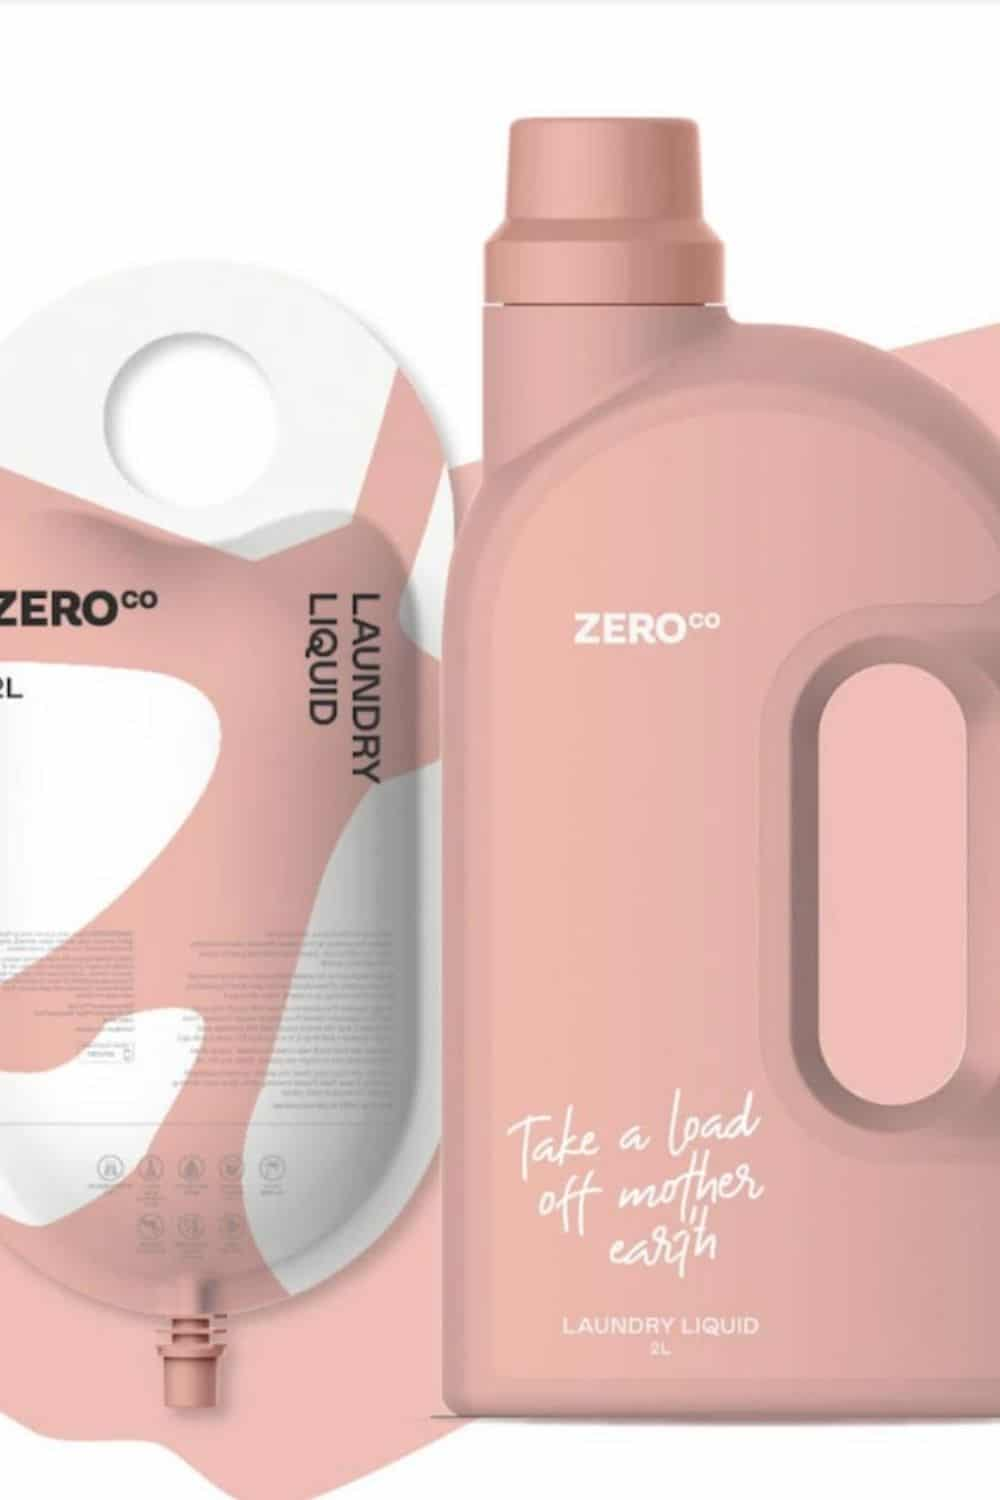 Zero Waste Laundry Detergent Image by Zero Co #zerowastelaundrydetegent #zerowastelaundry #sustainablejungle